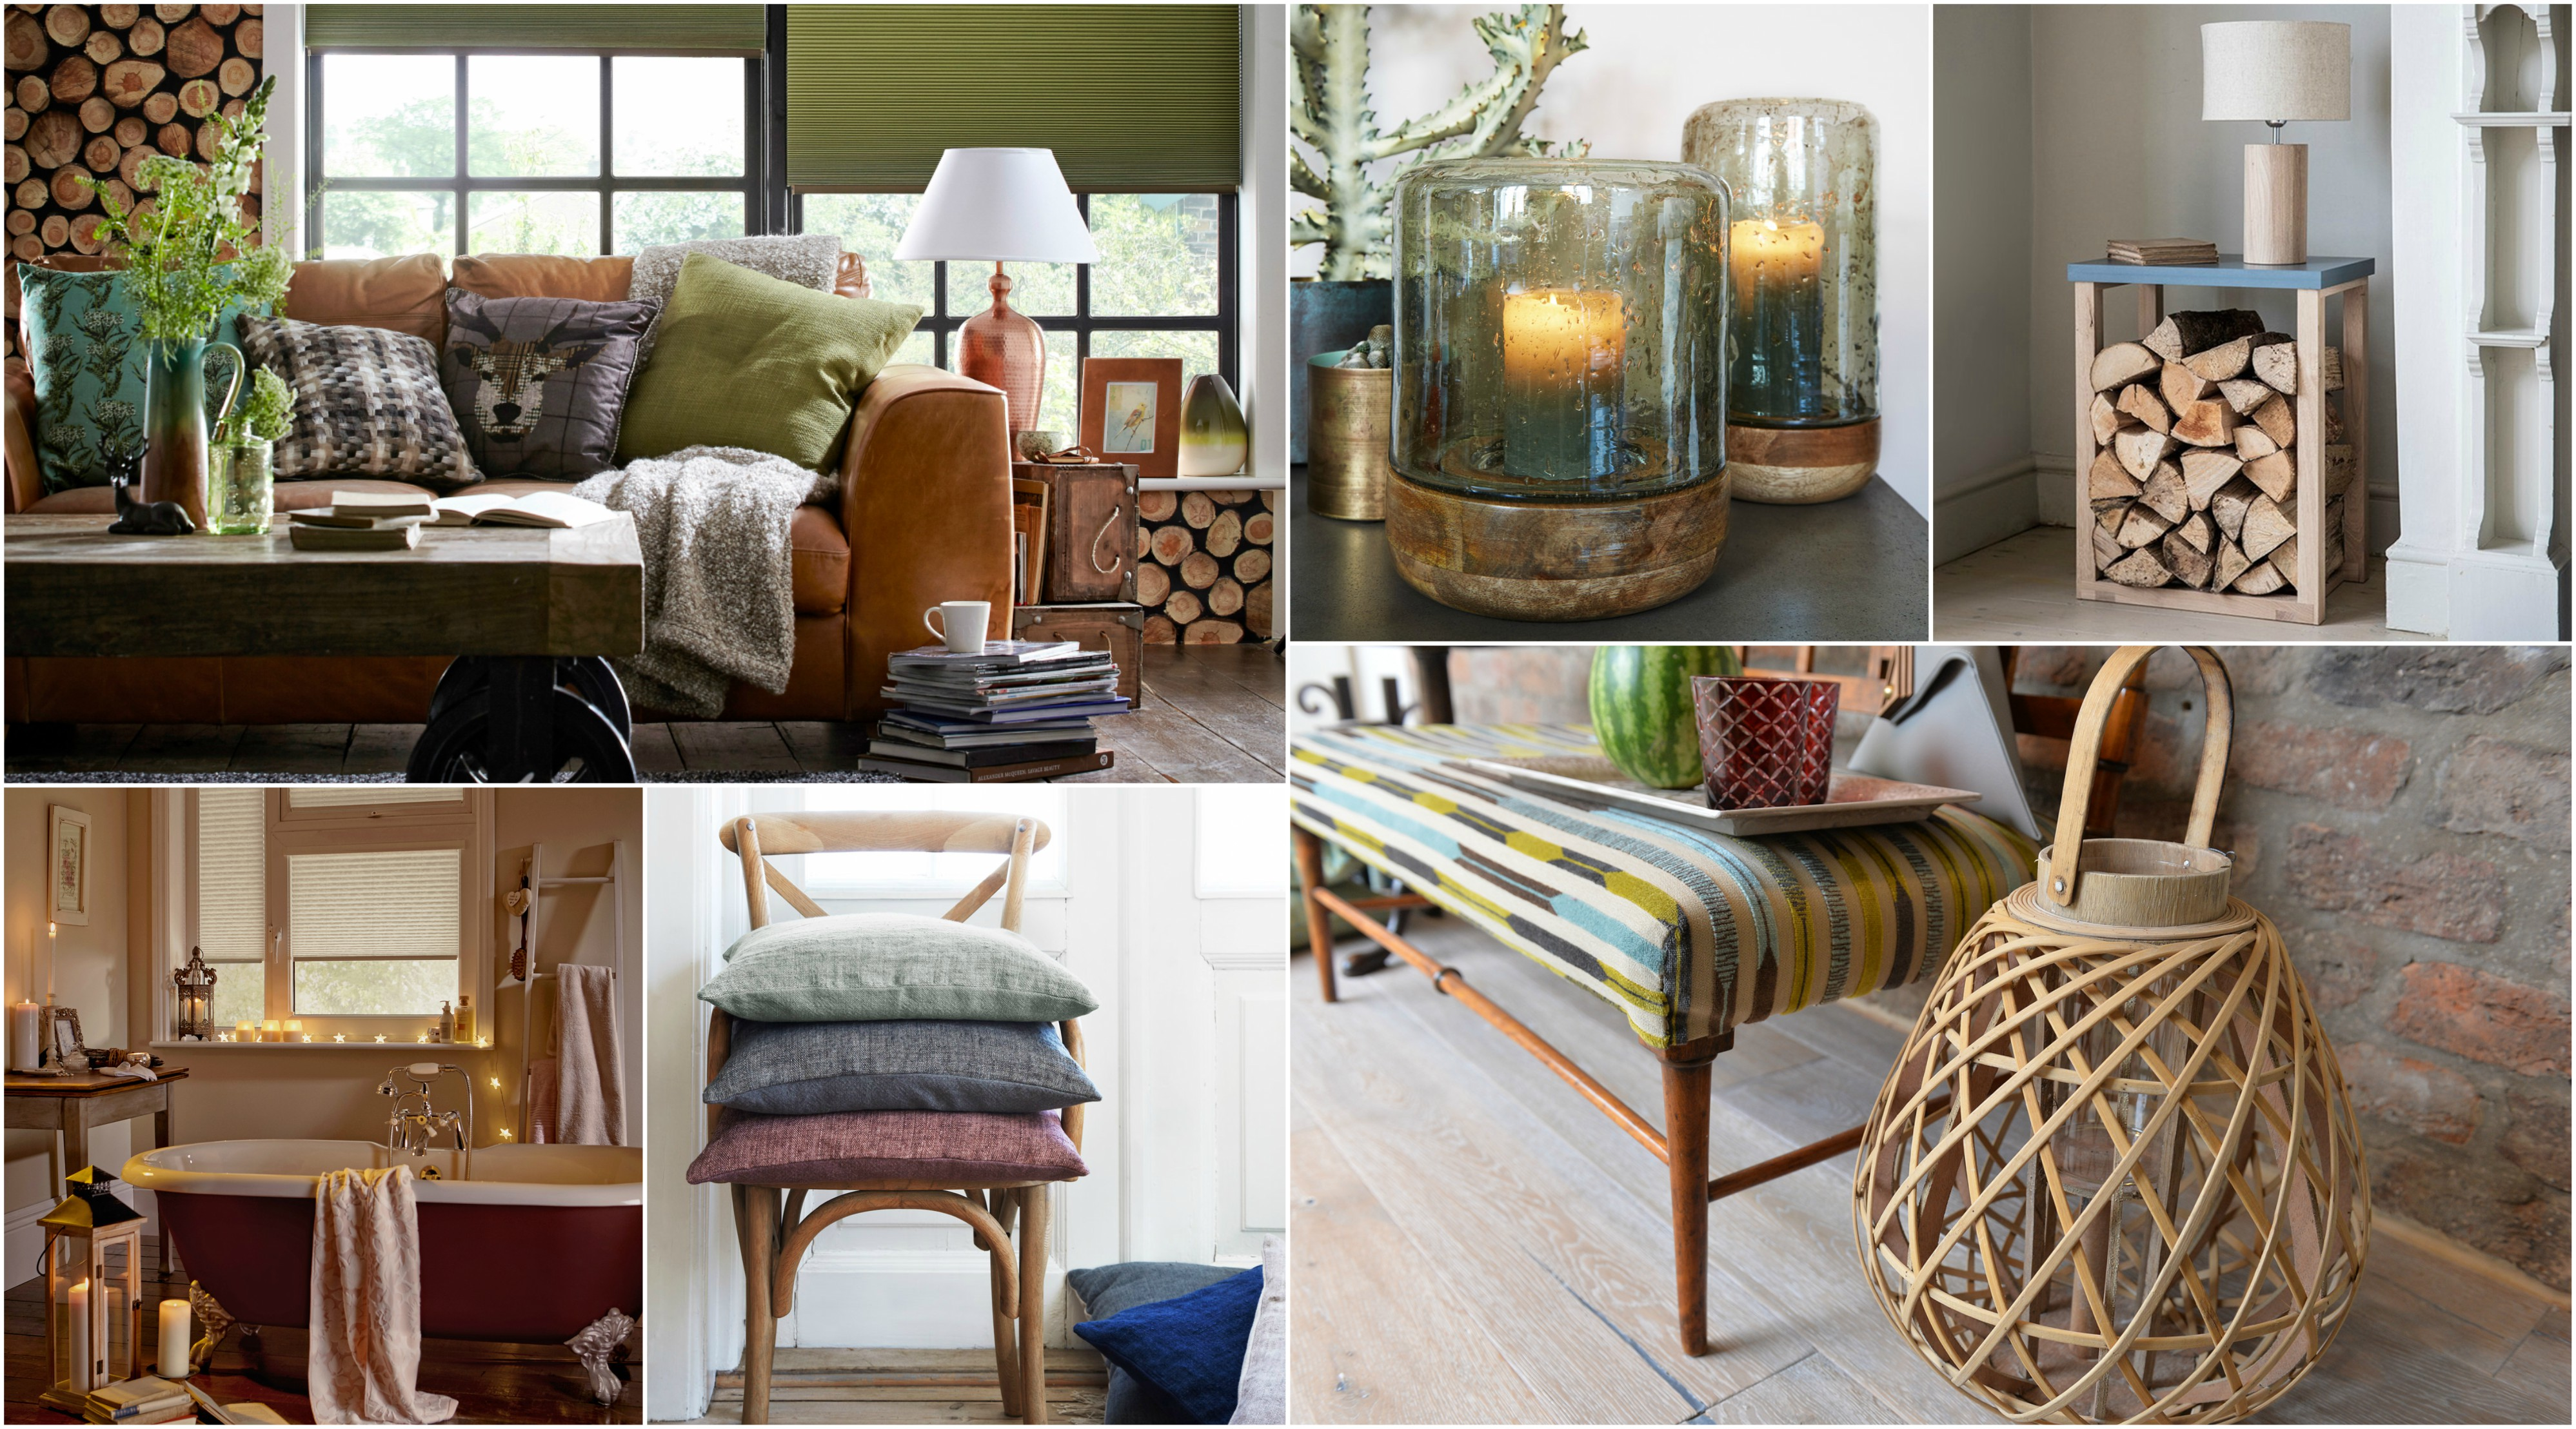 27 Hygge Inspired Items For Your Home